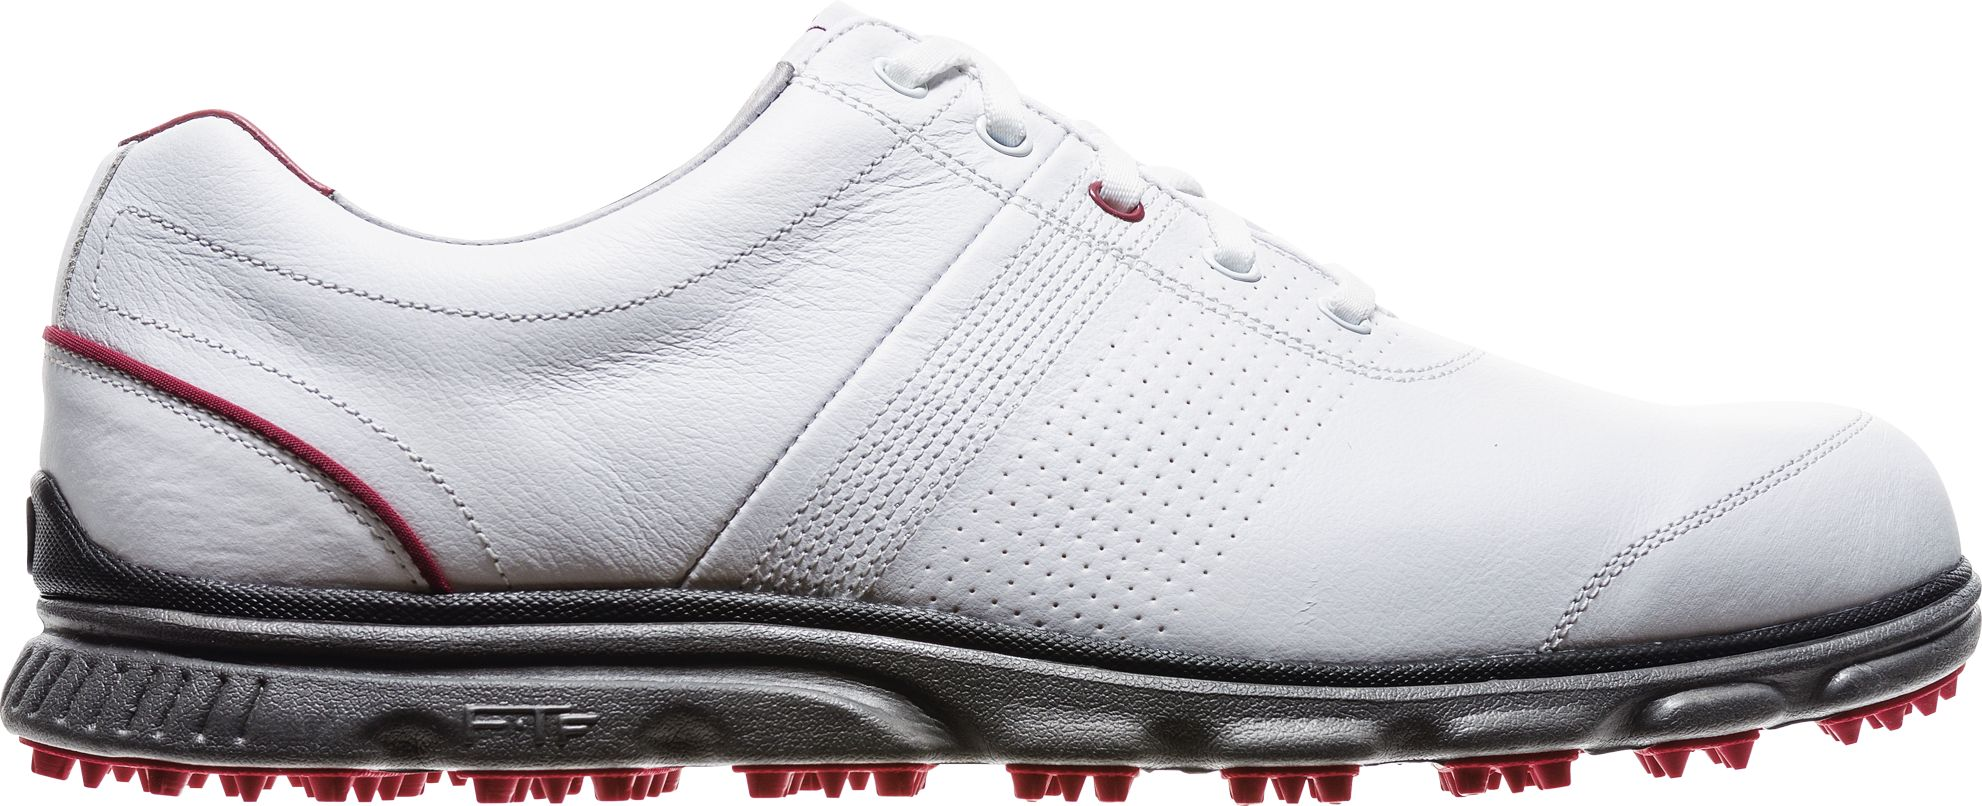 FootJoy DryJoys Casual Golf Shoes (Closeout)